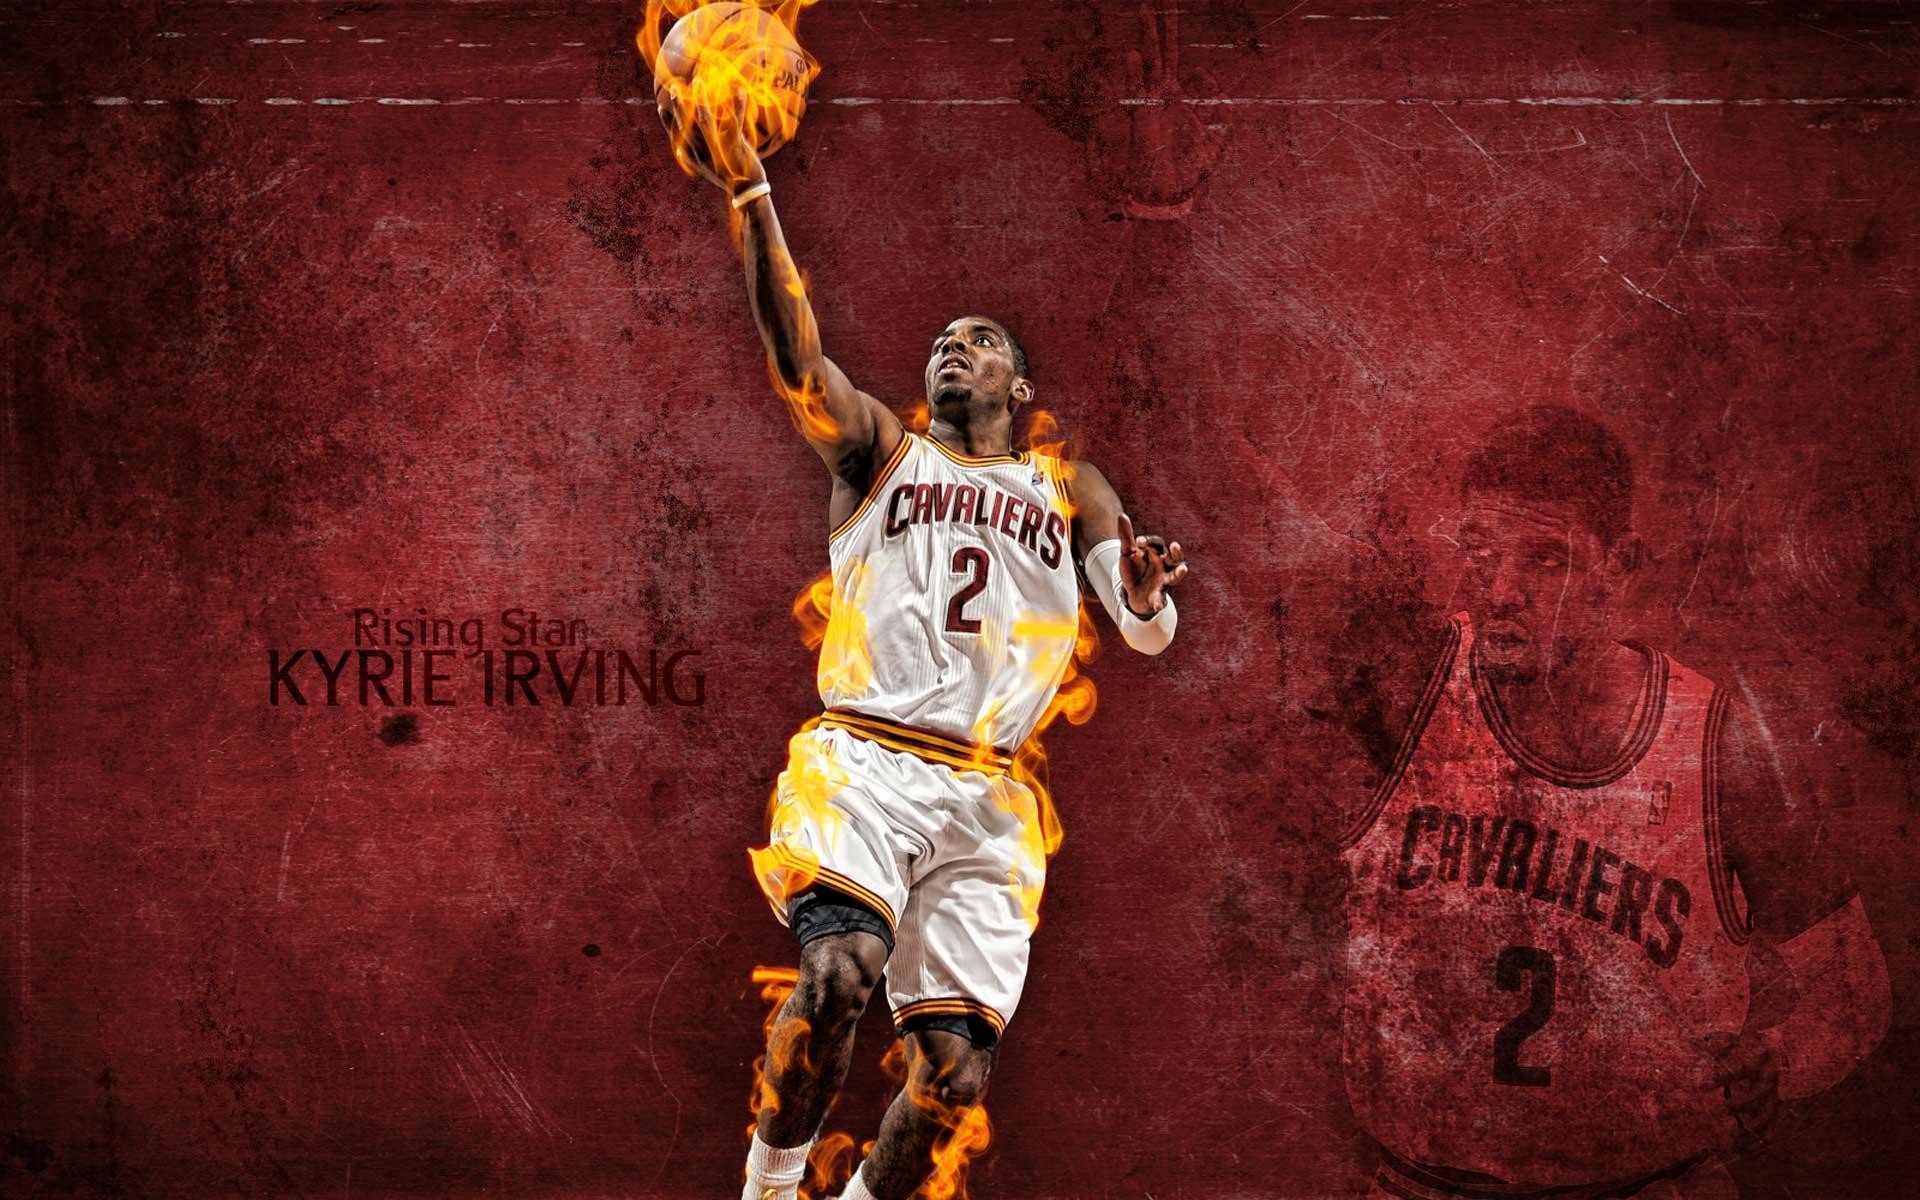 2880x1800 kyrie irving free for desktop 2880x1800